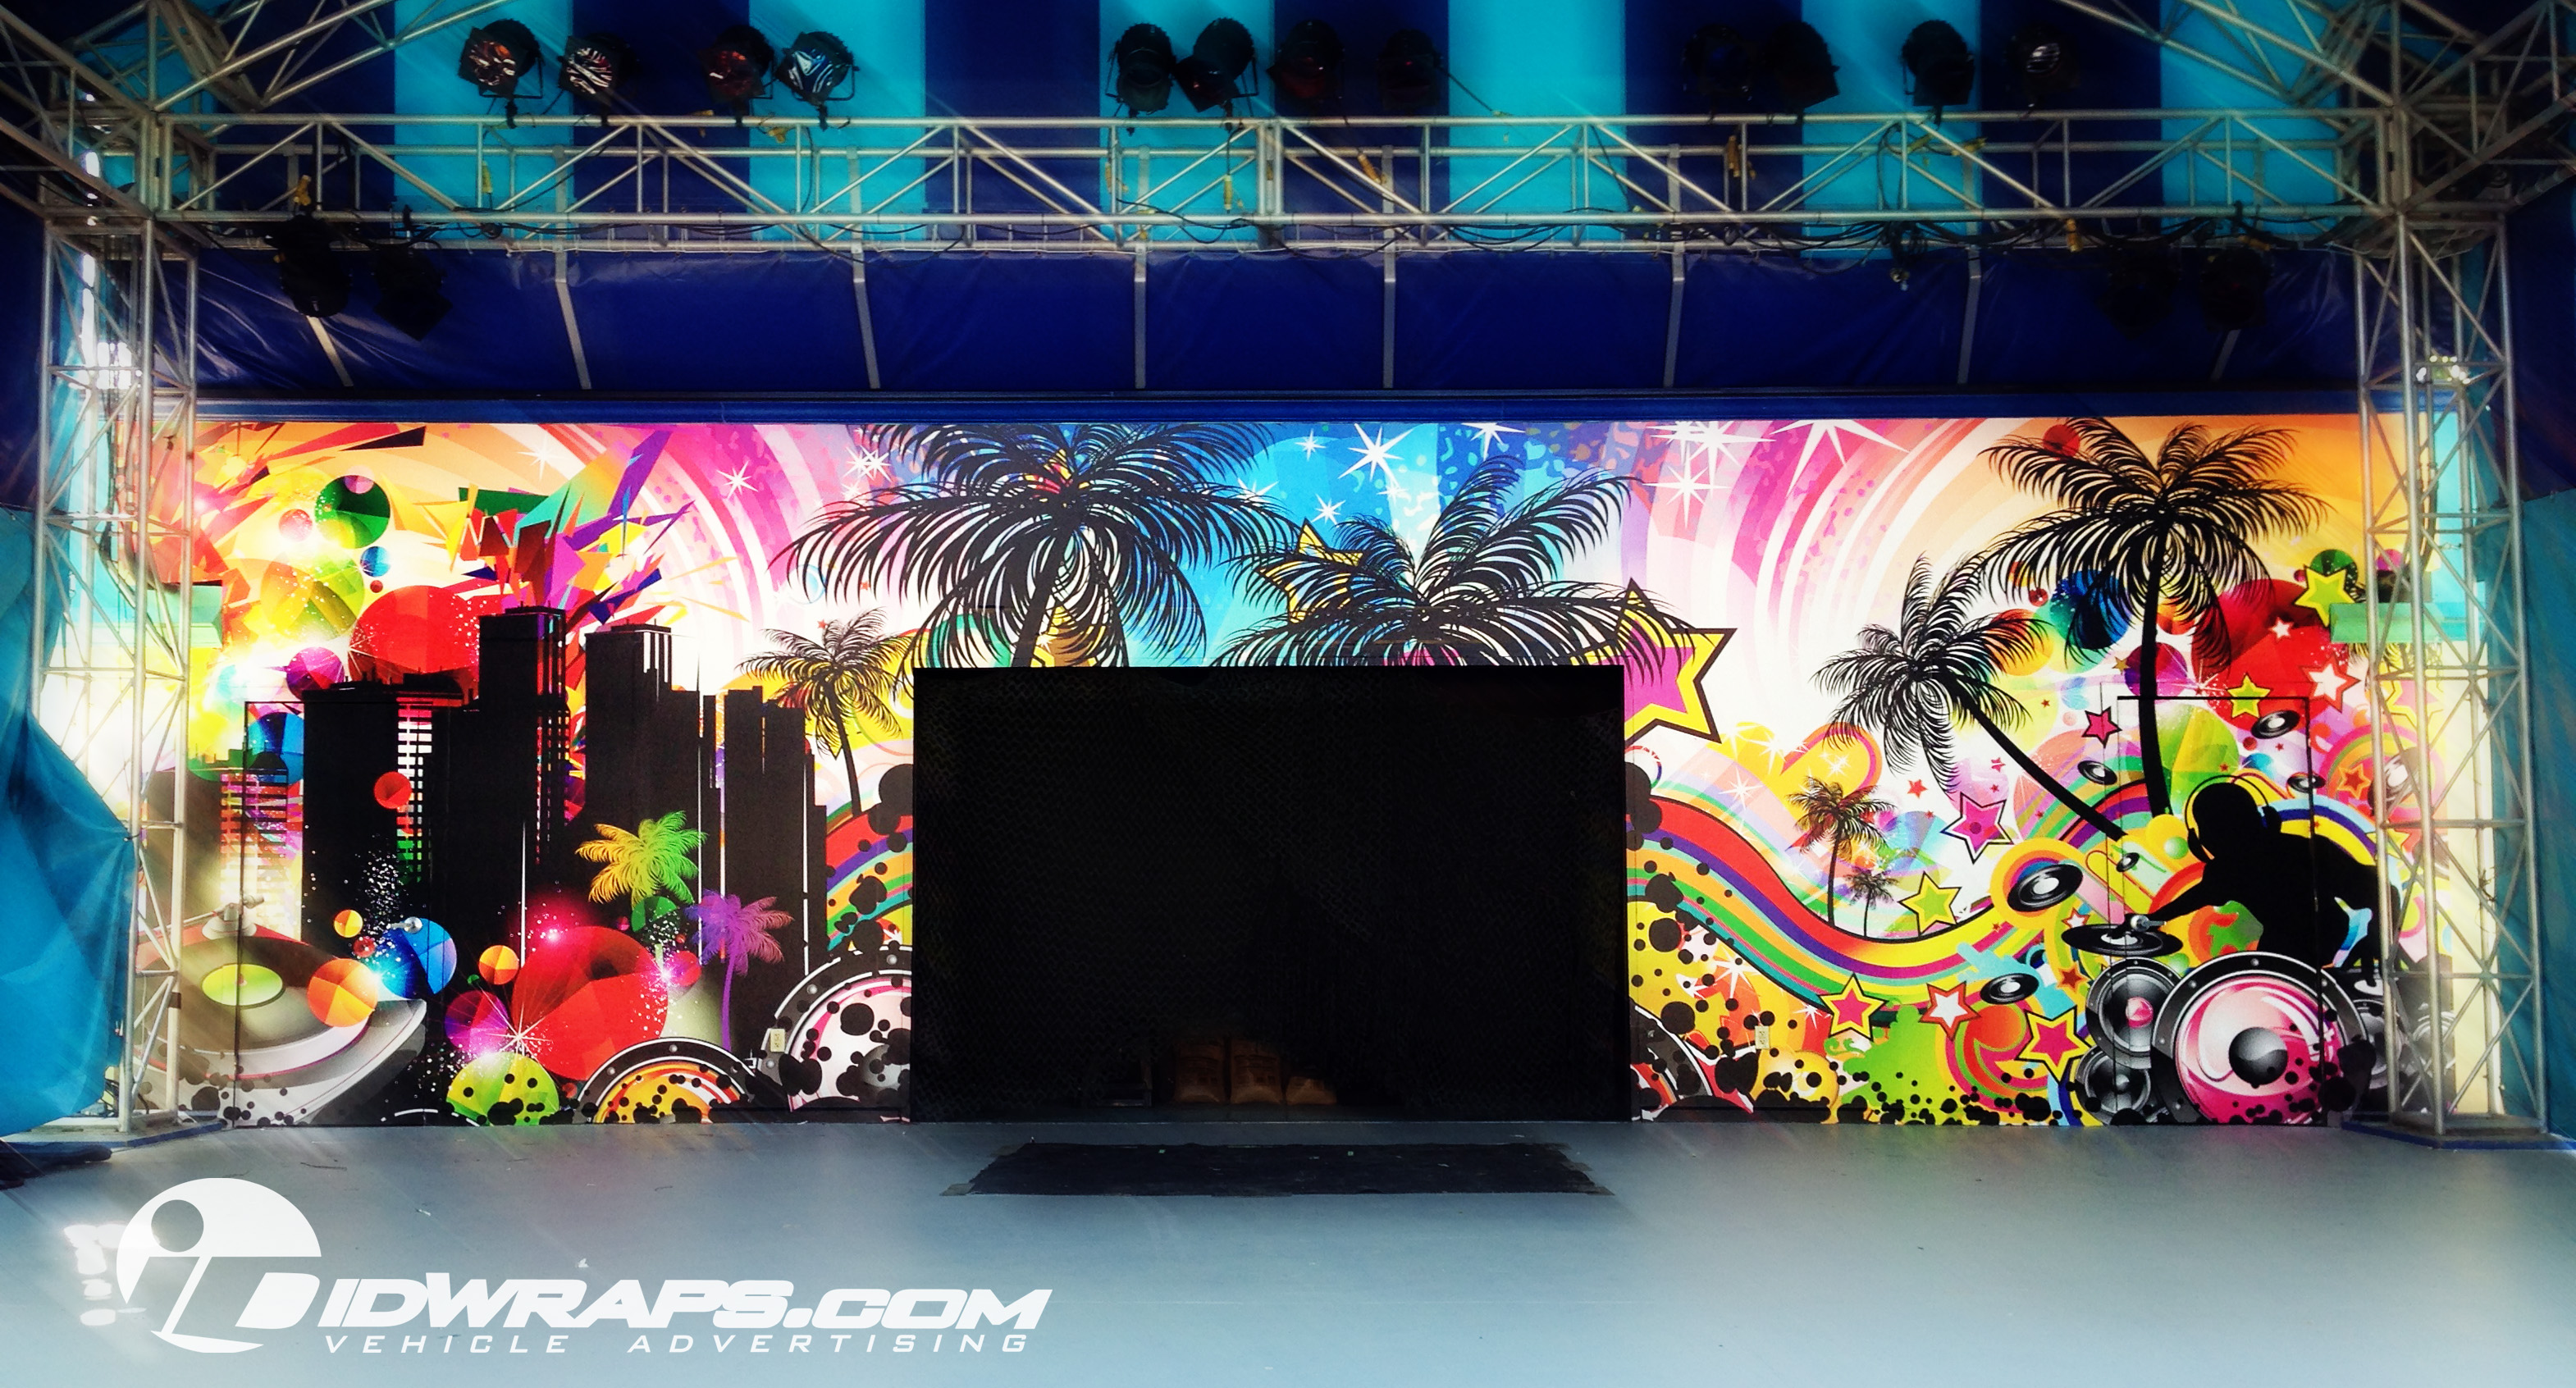 Dorney Park 2013 Summer Main Stage Wall Mural Drywall Wrap IDWraps